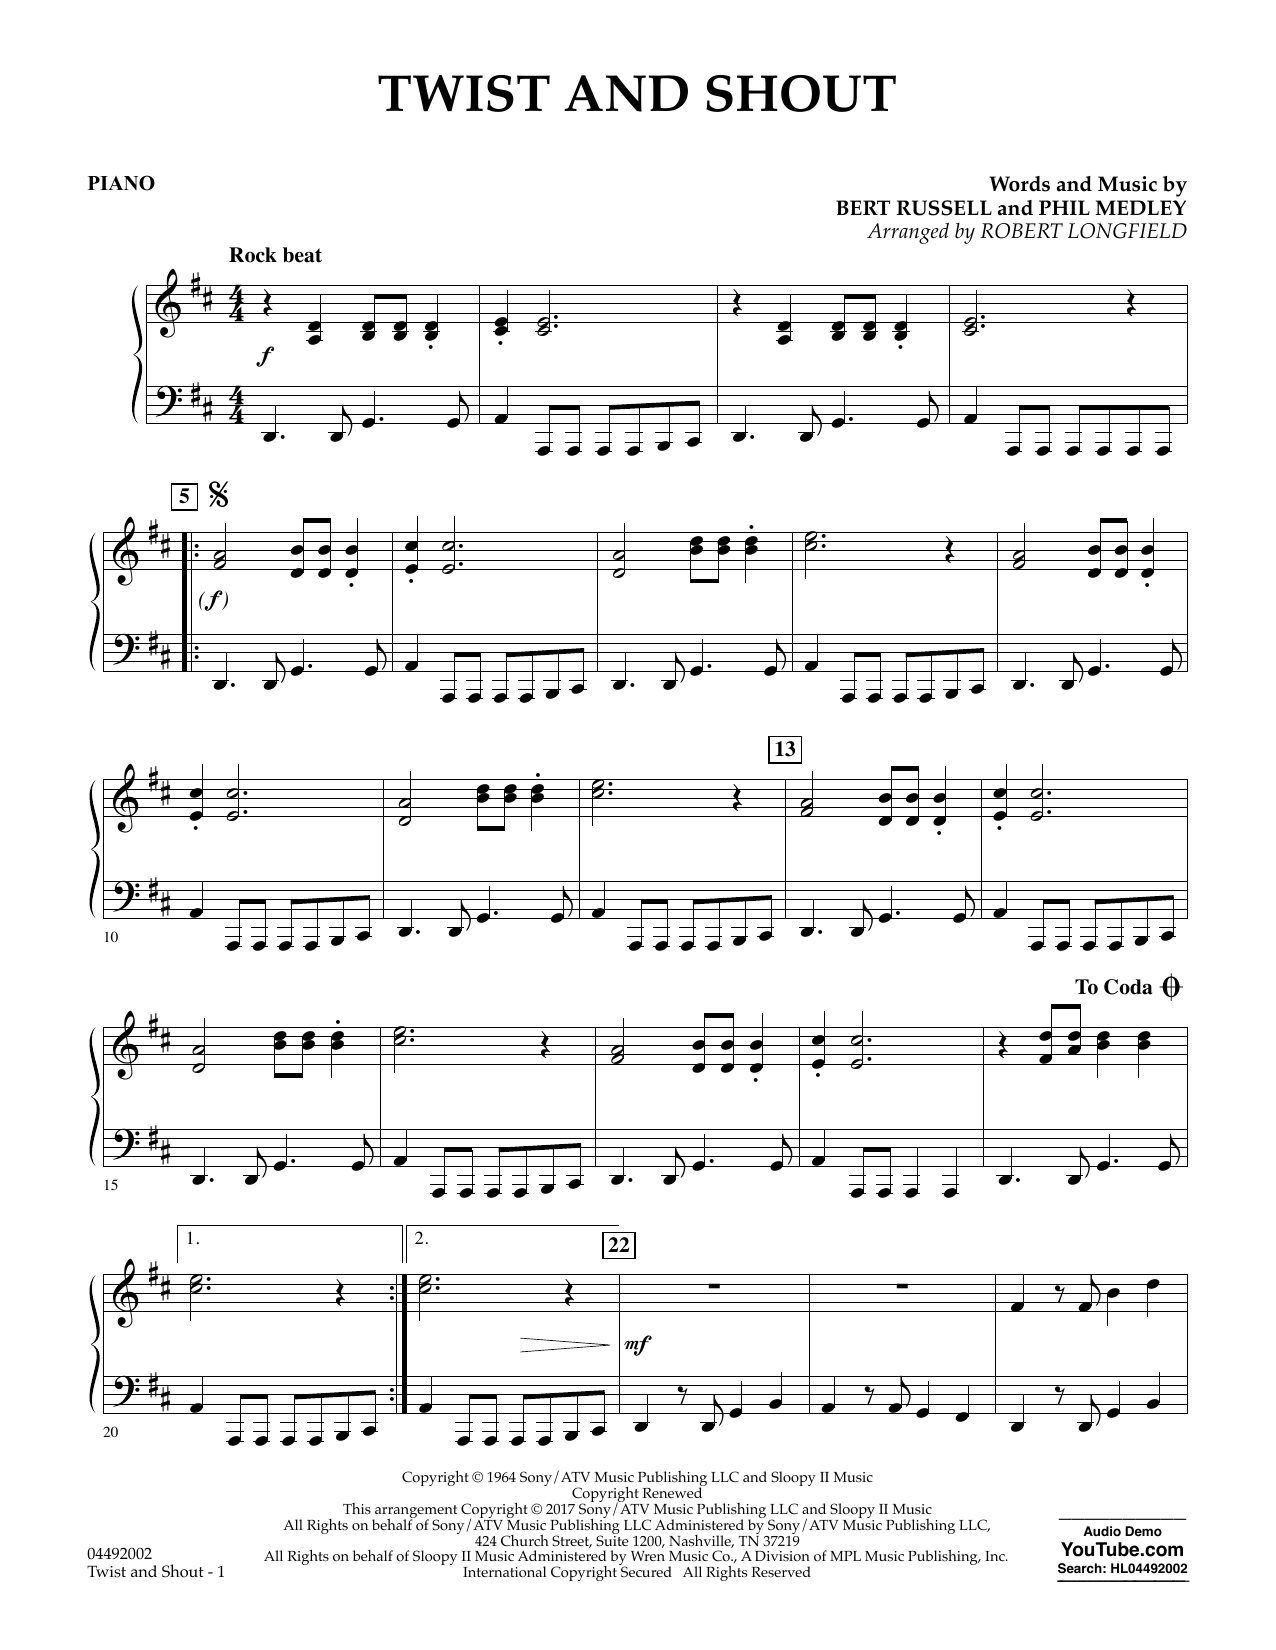 Robert Longfield Twist and Shout - Piano sheet music notes and chords. Download Printable PDF.